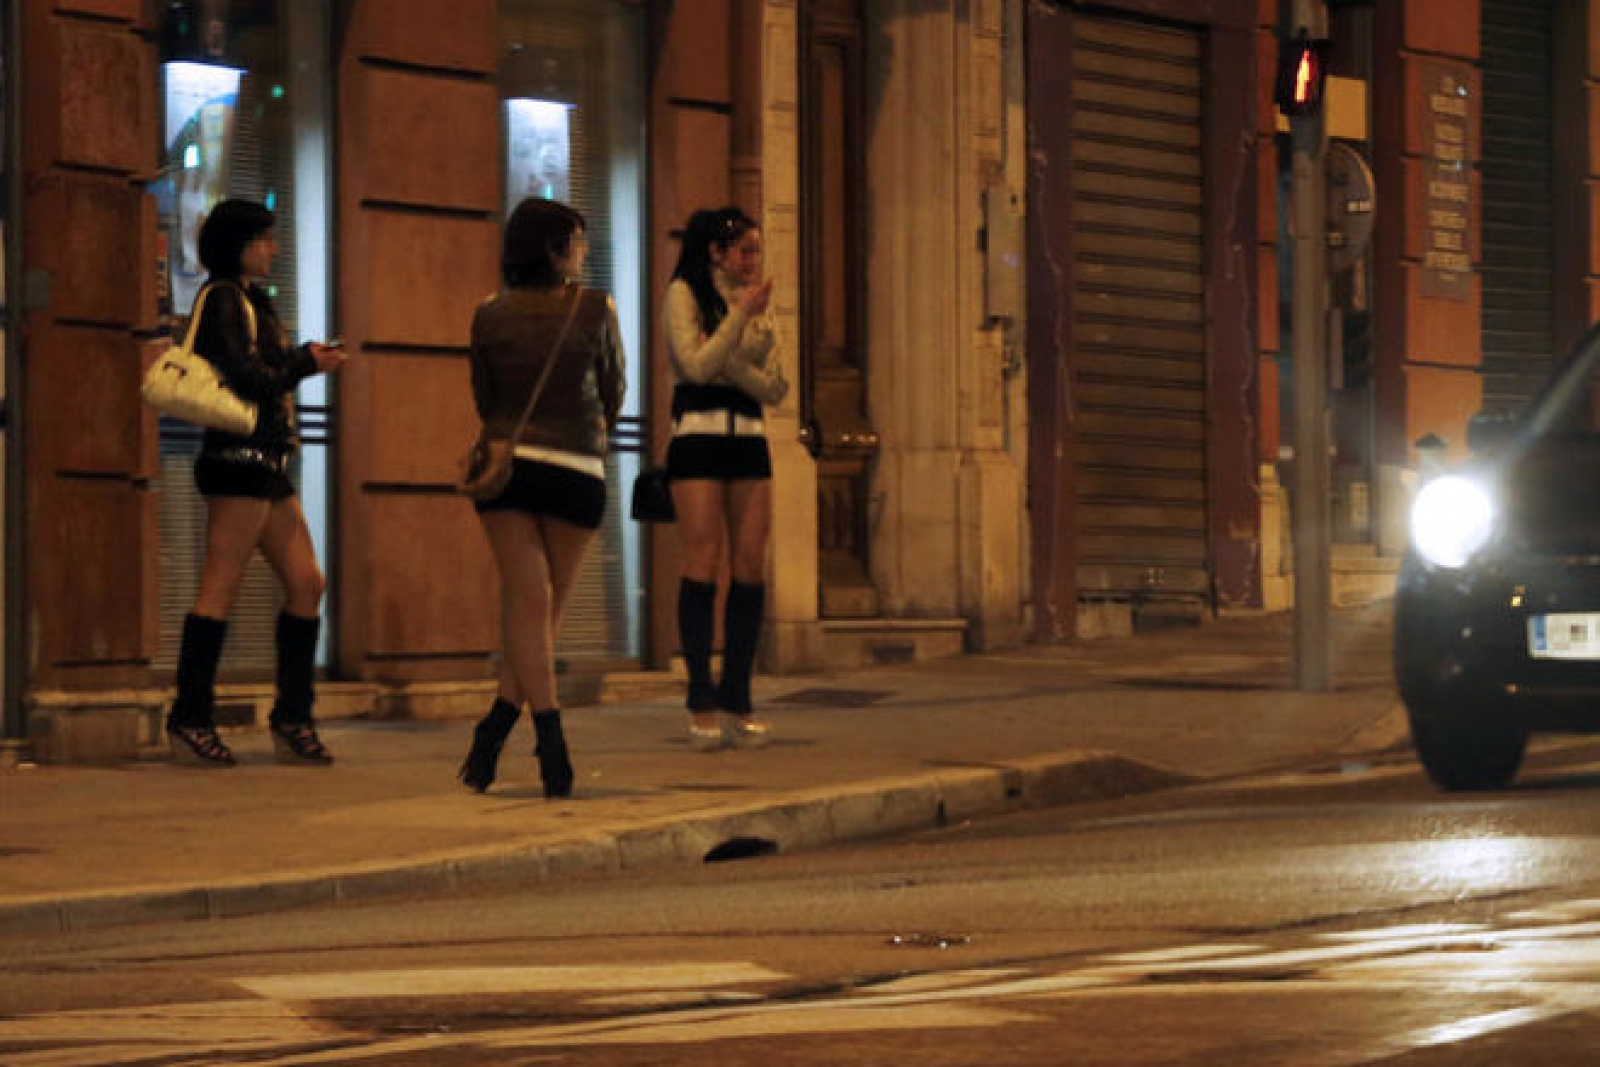 Face Of The First Prostitute Conicted In Oxford Road Vice Clampdown